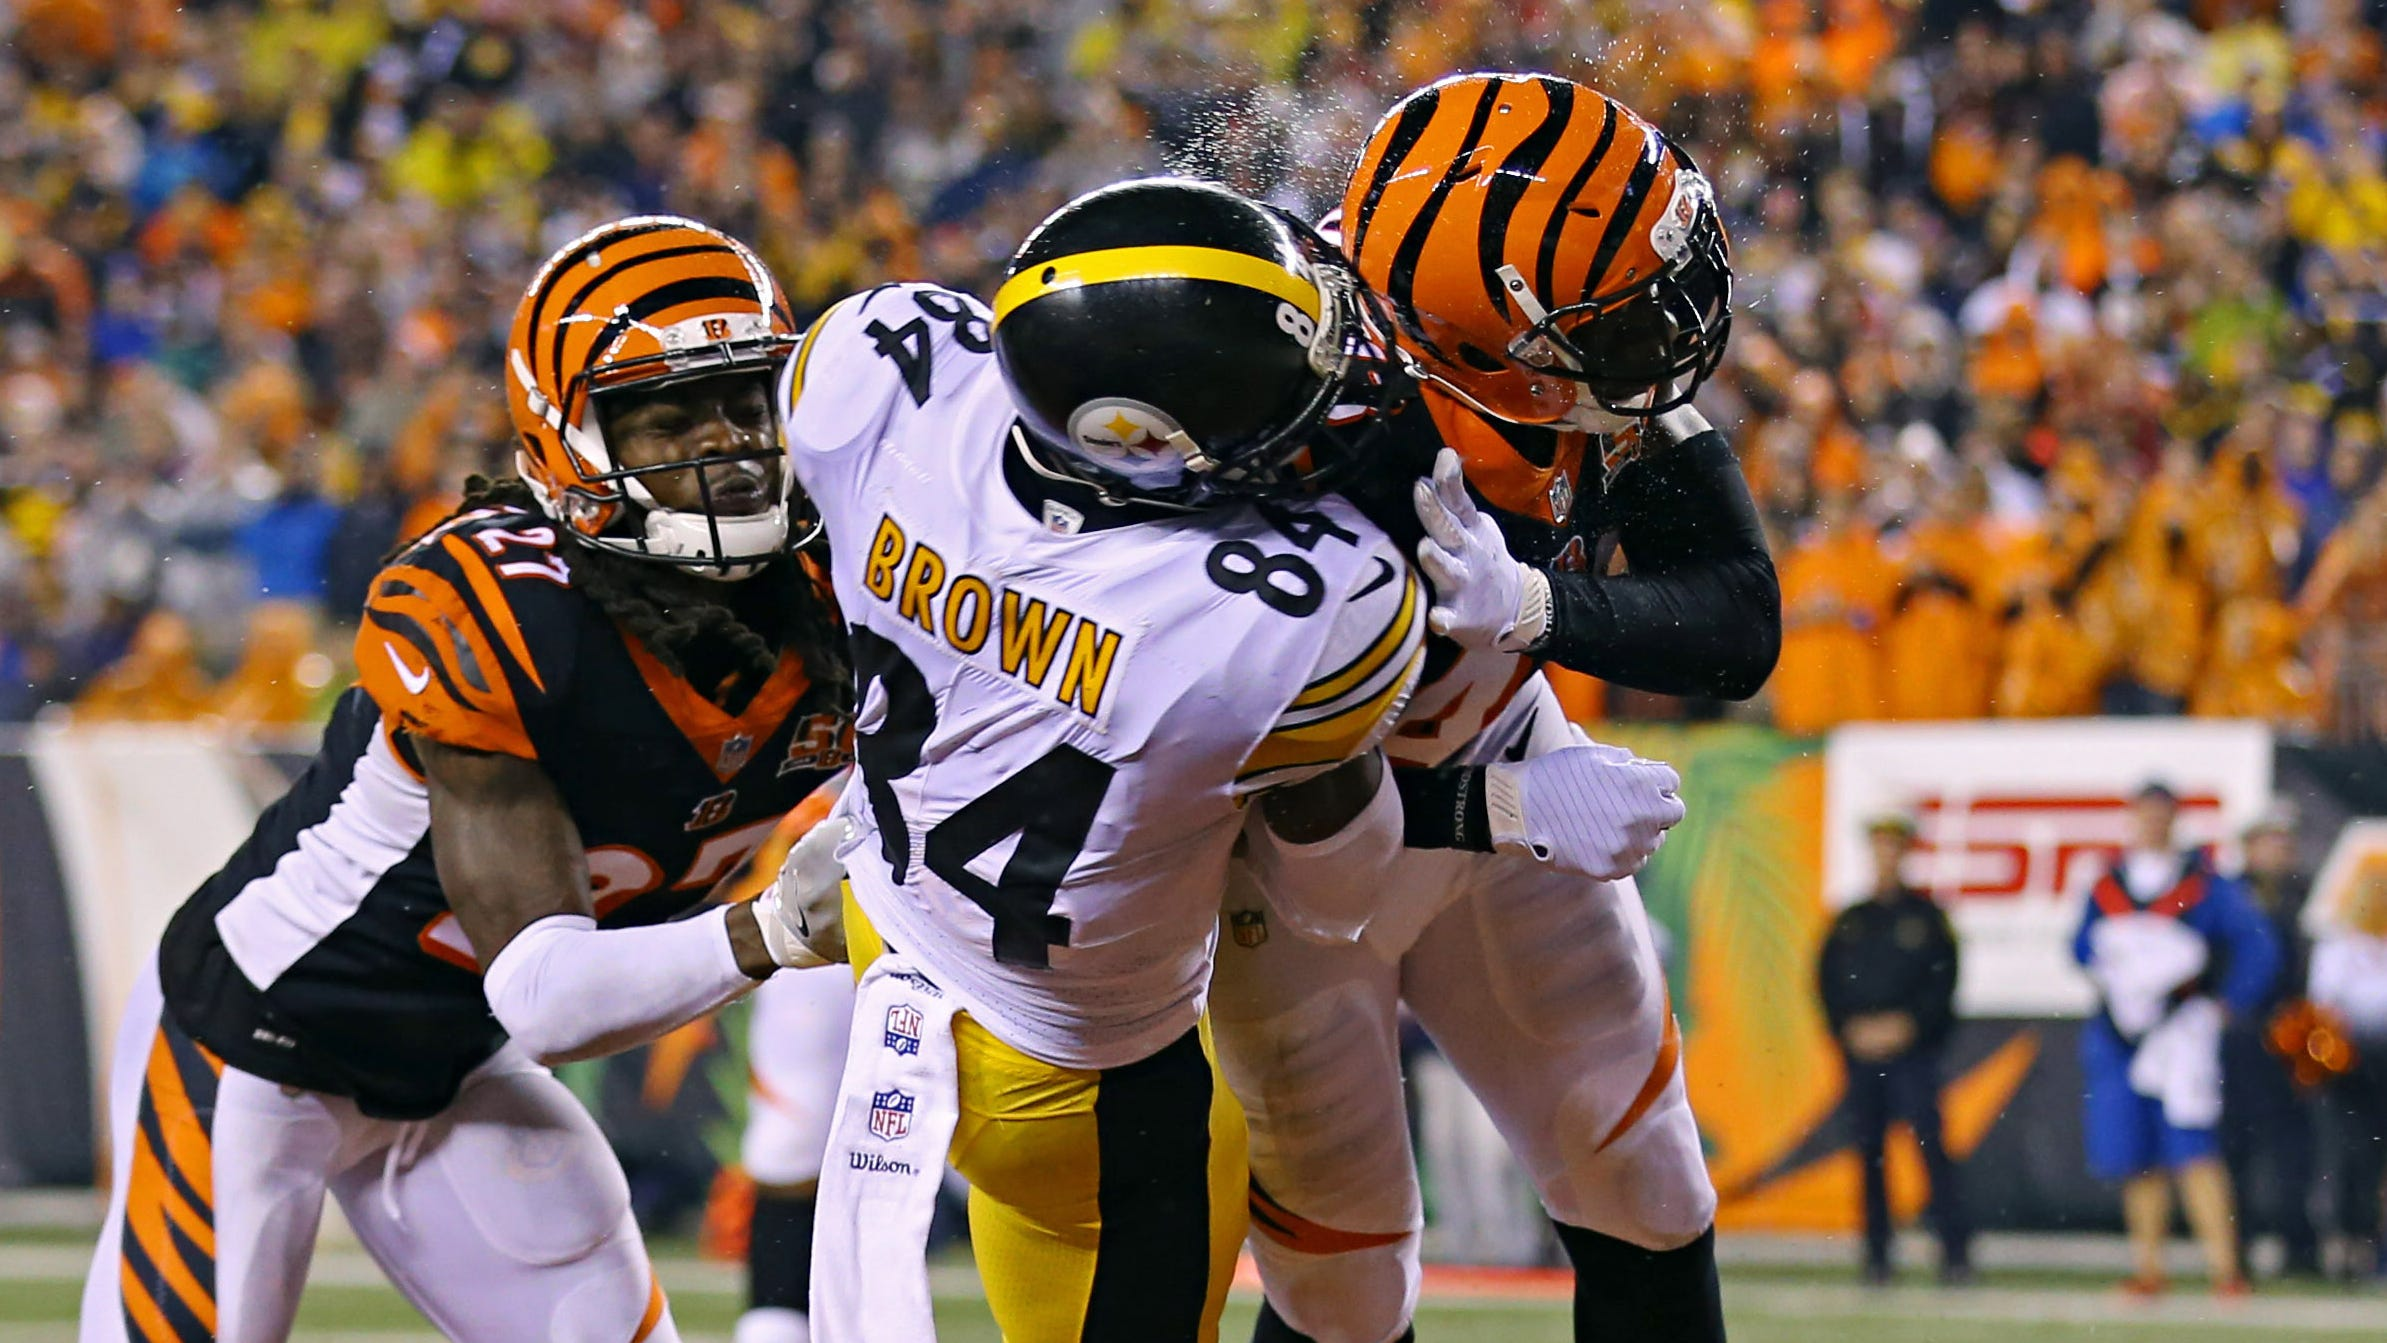 NFL Week 6 matchups to watch: Bad blood flowing again for Steelers, Bengals?